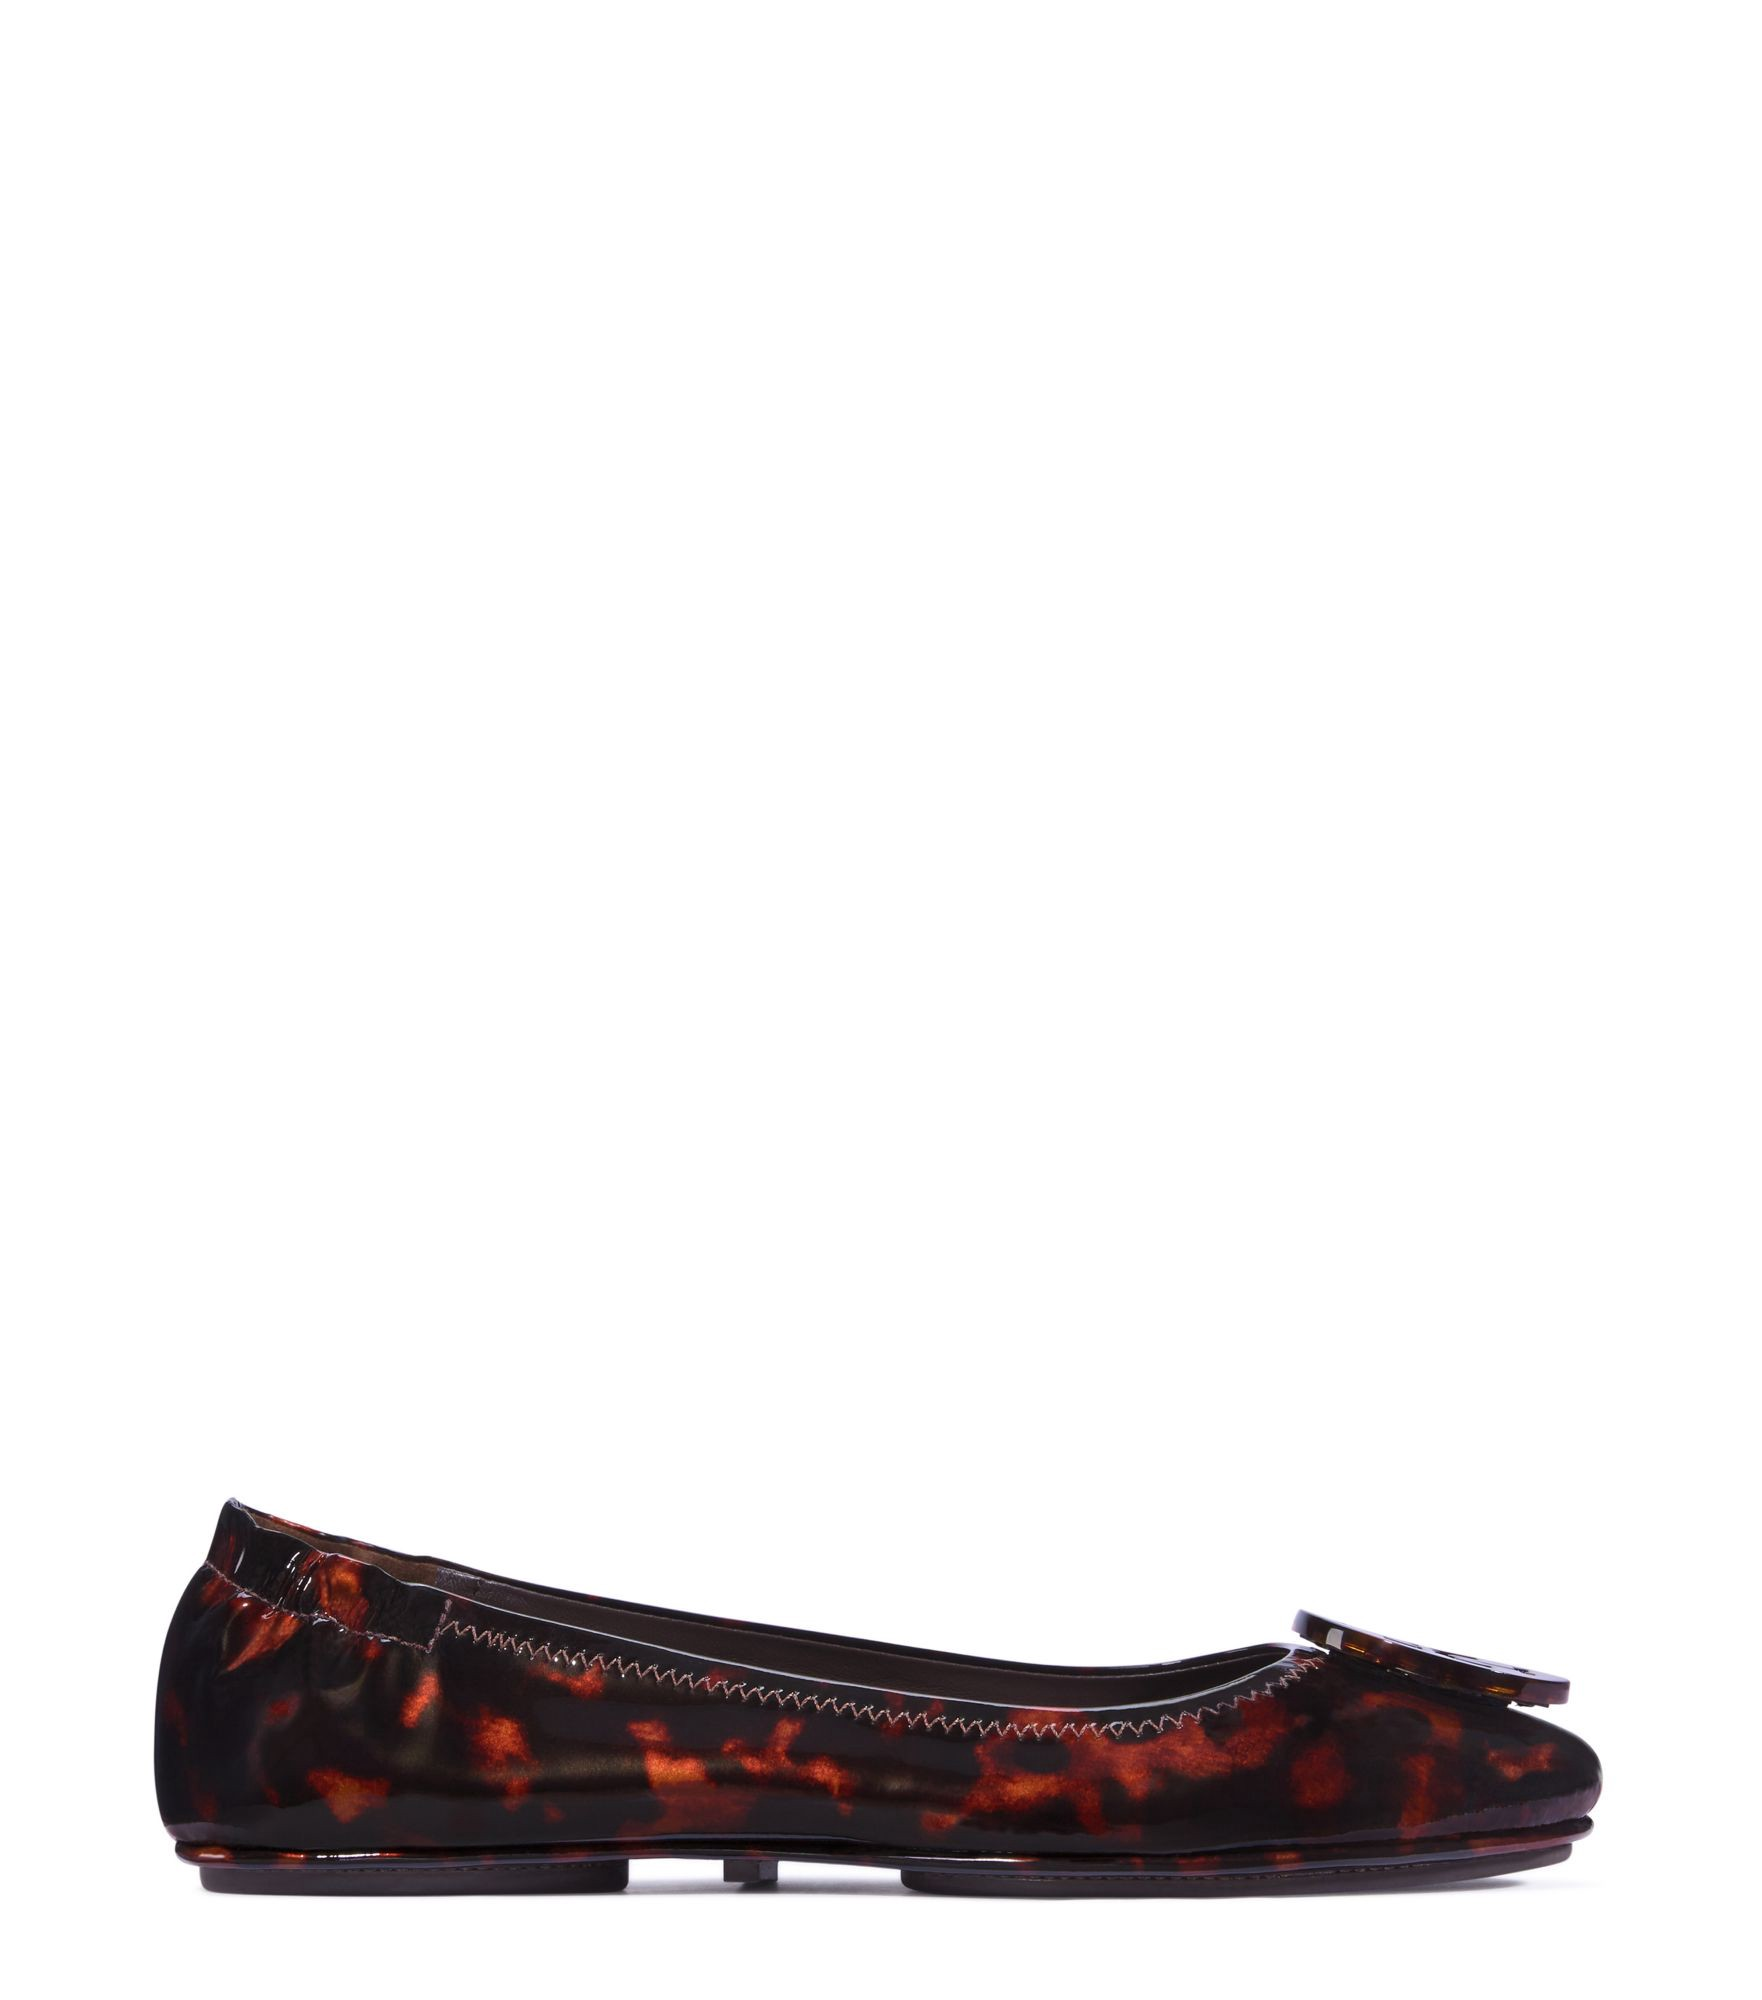 TORY BURCH Minnie Travel Tortoiseshell Patent Leather Ballet Flats